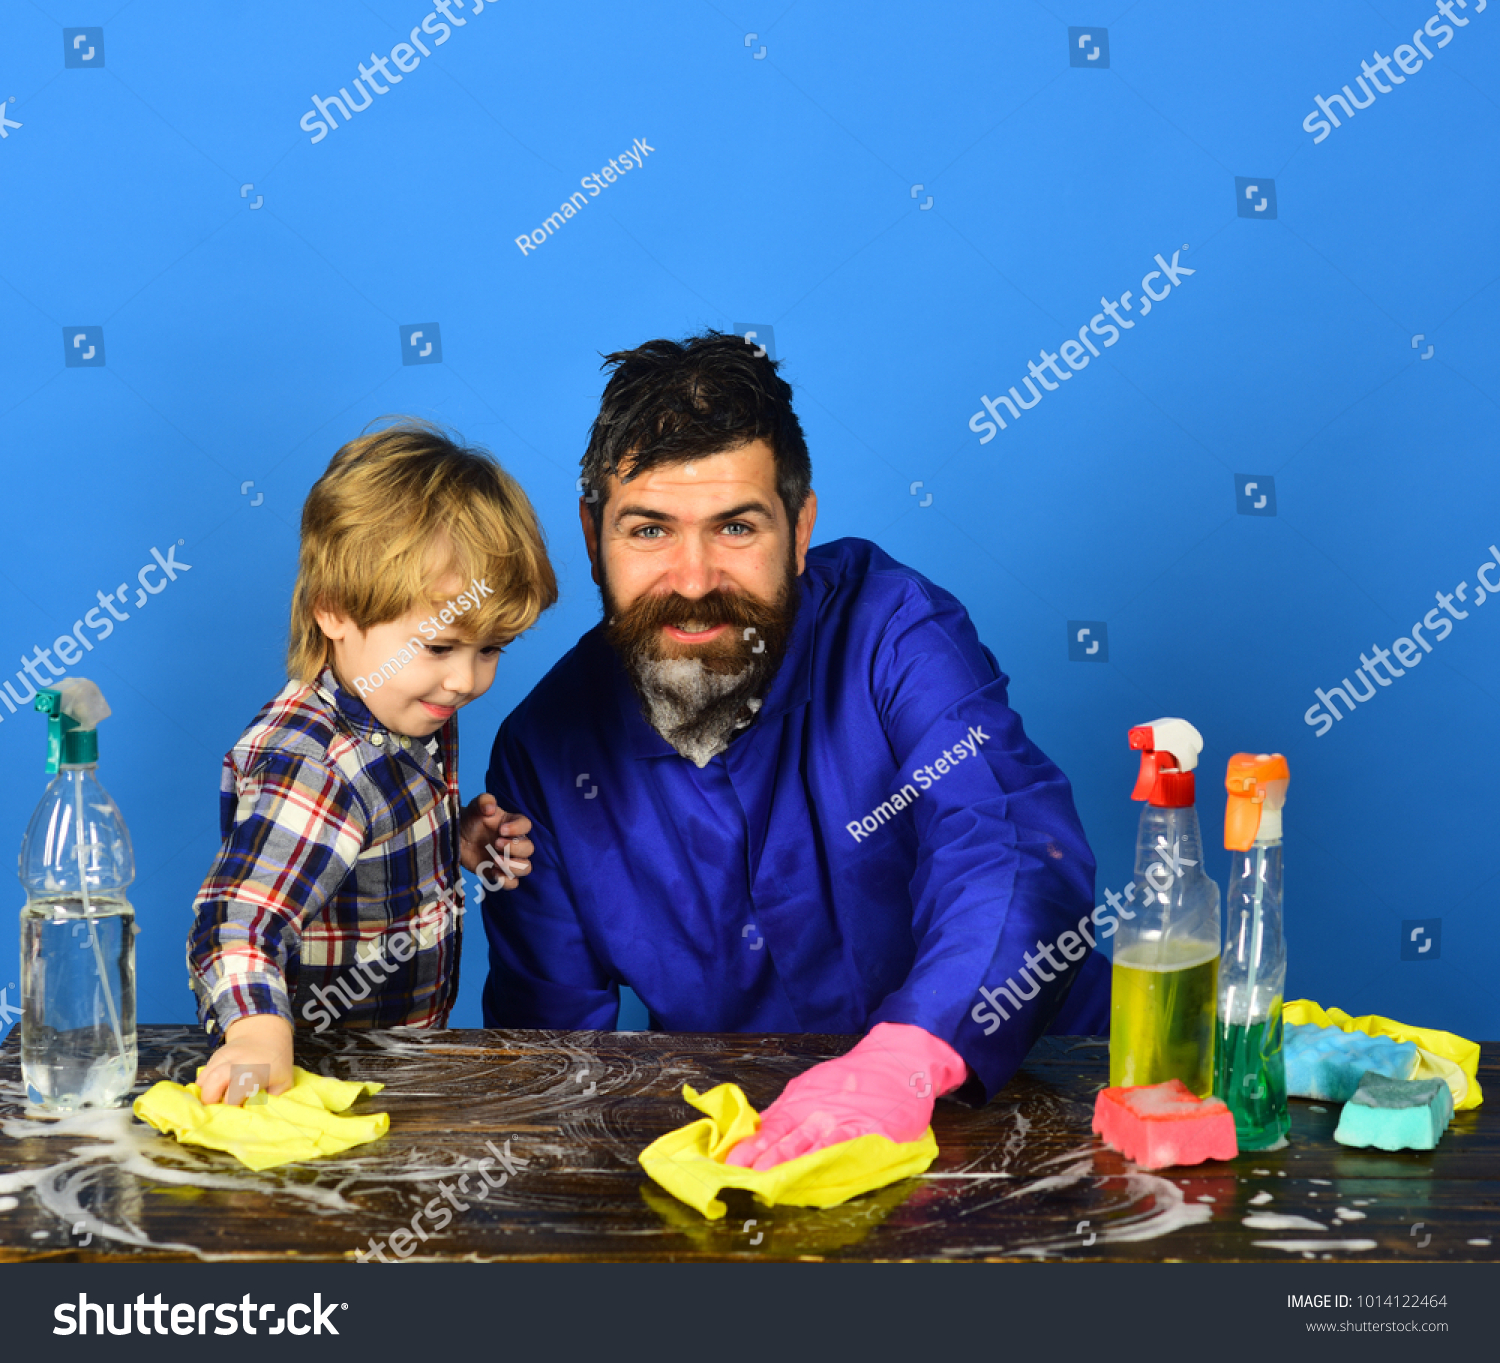 Dad With Son And Cleaning Supplies On Blue Background Man With Beard